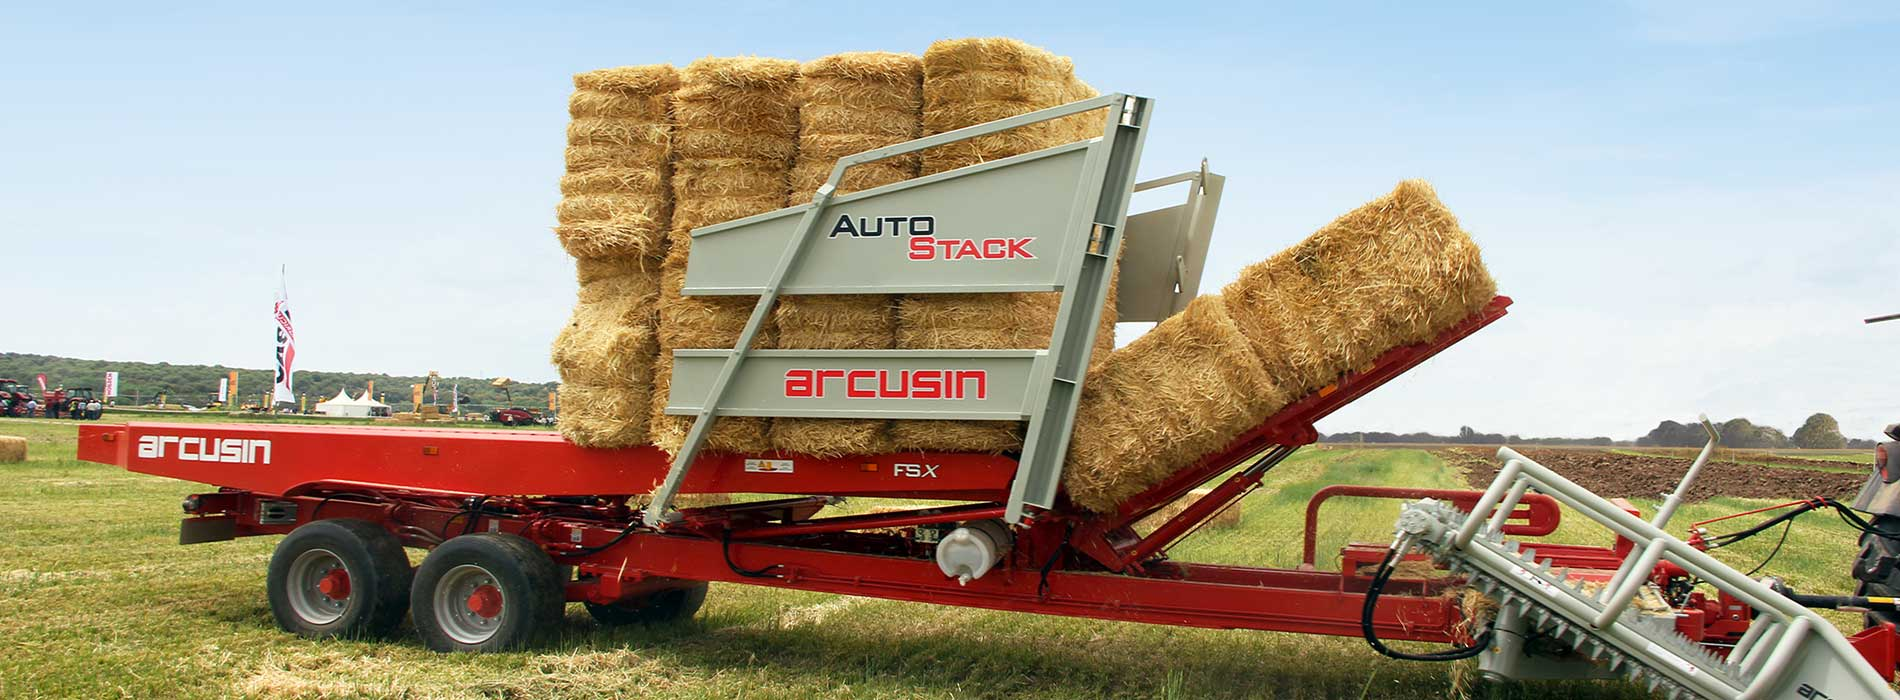 Welcome to Arcusin UK LTD